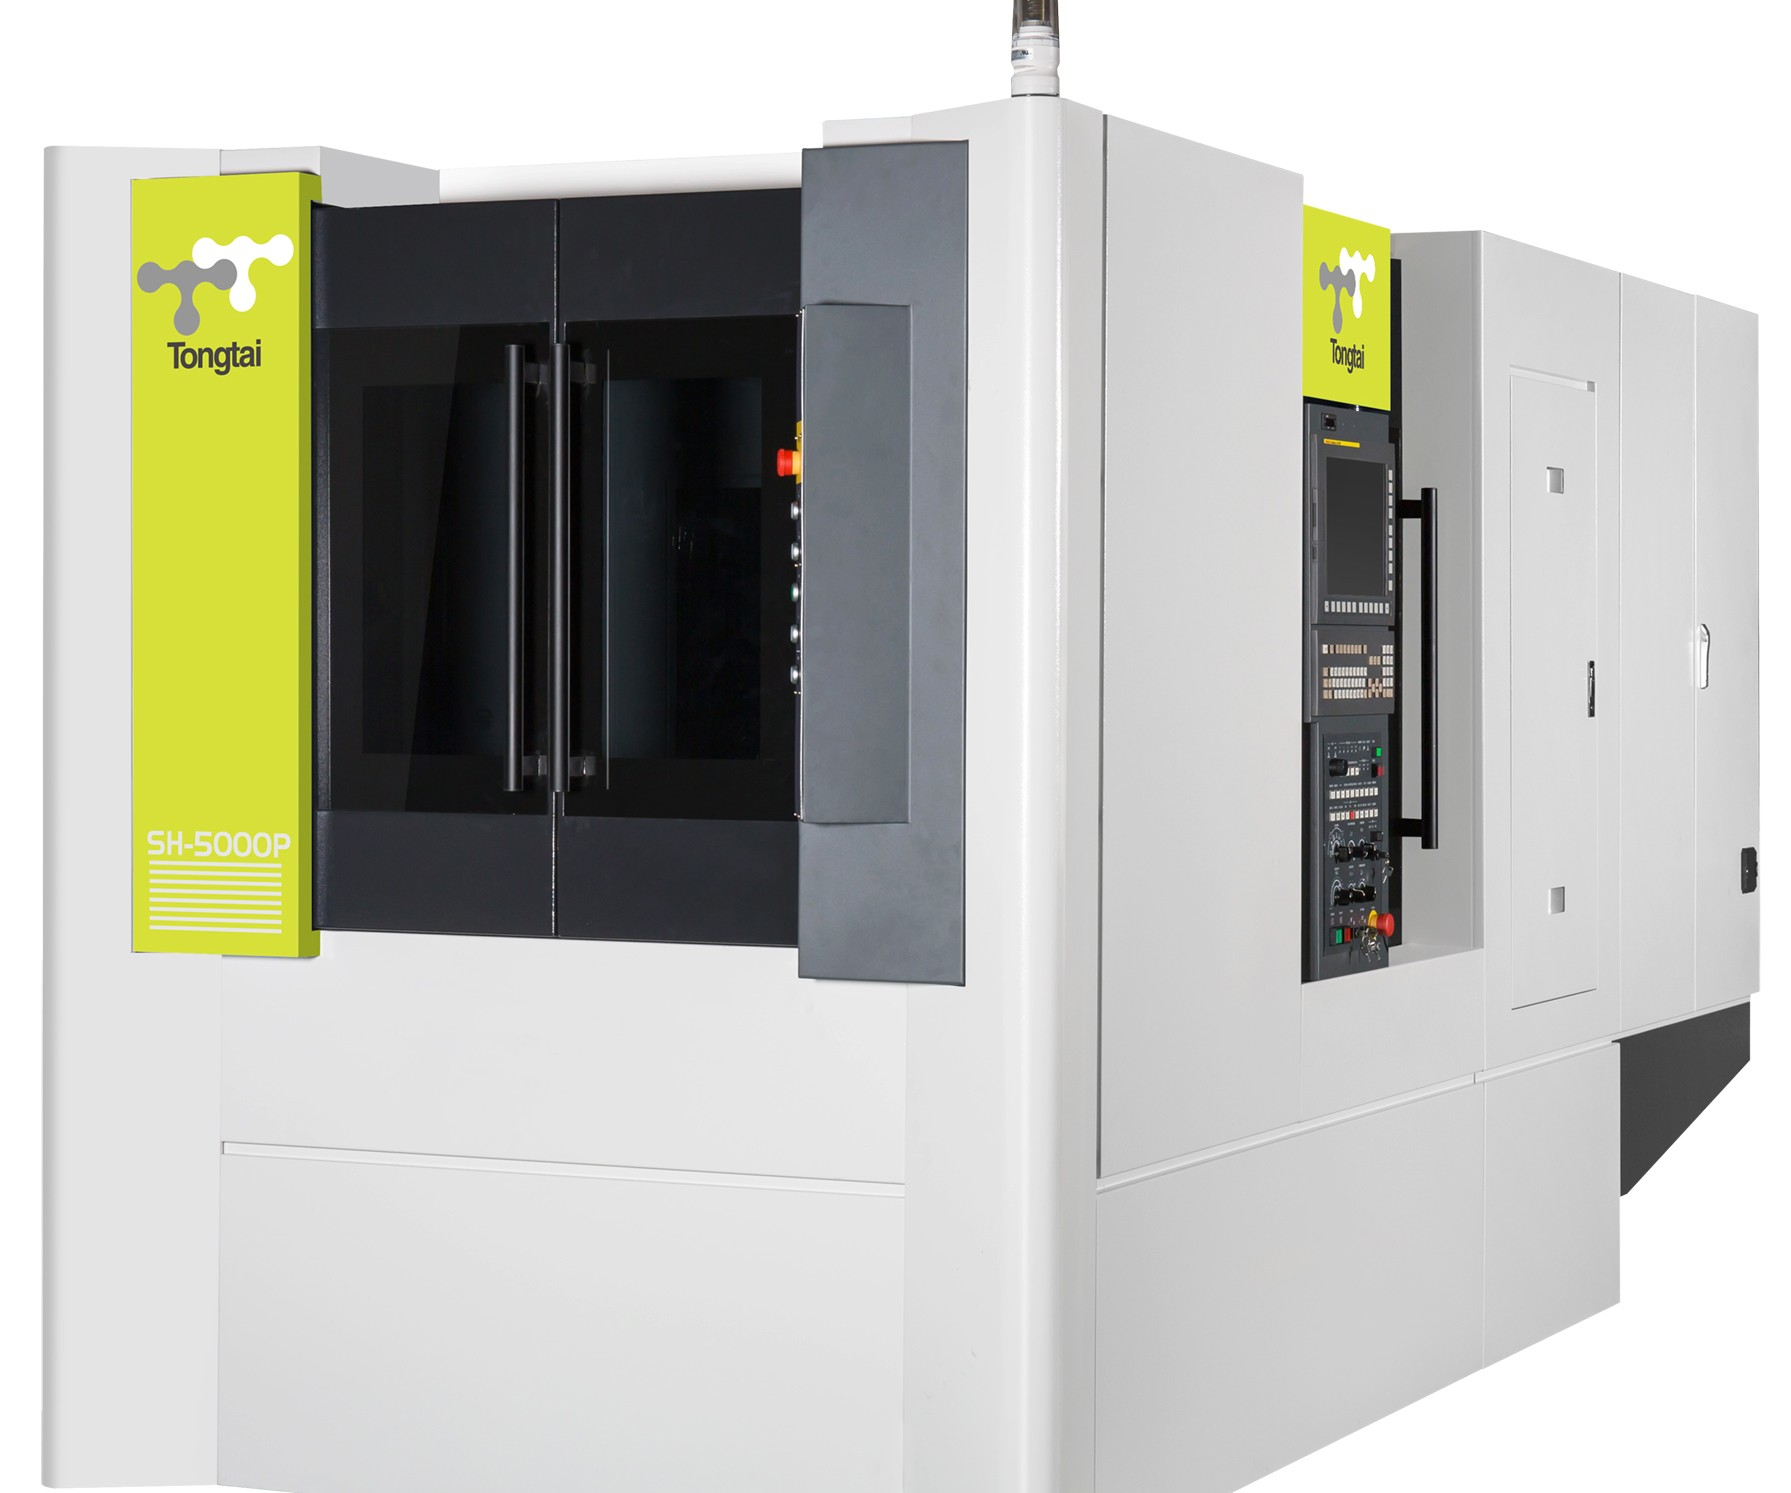 Absolute Machine Tools will display Tongtai's SH-5000P HMC at IMTS 2018.